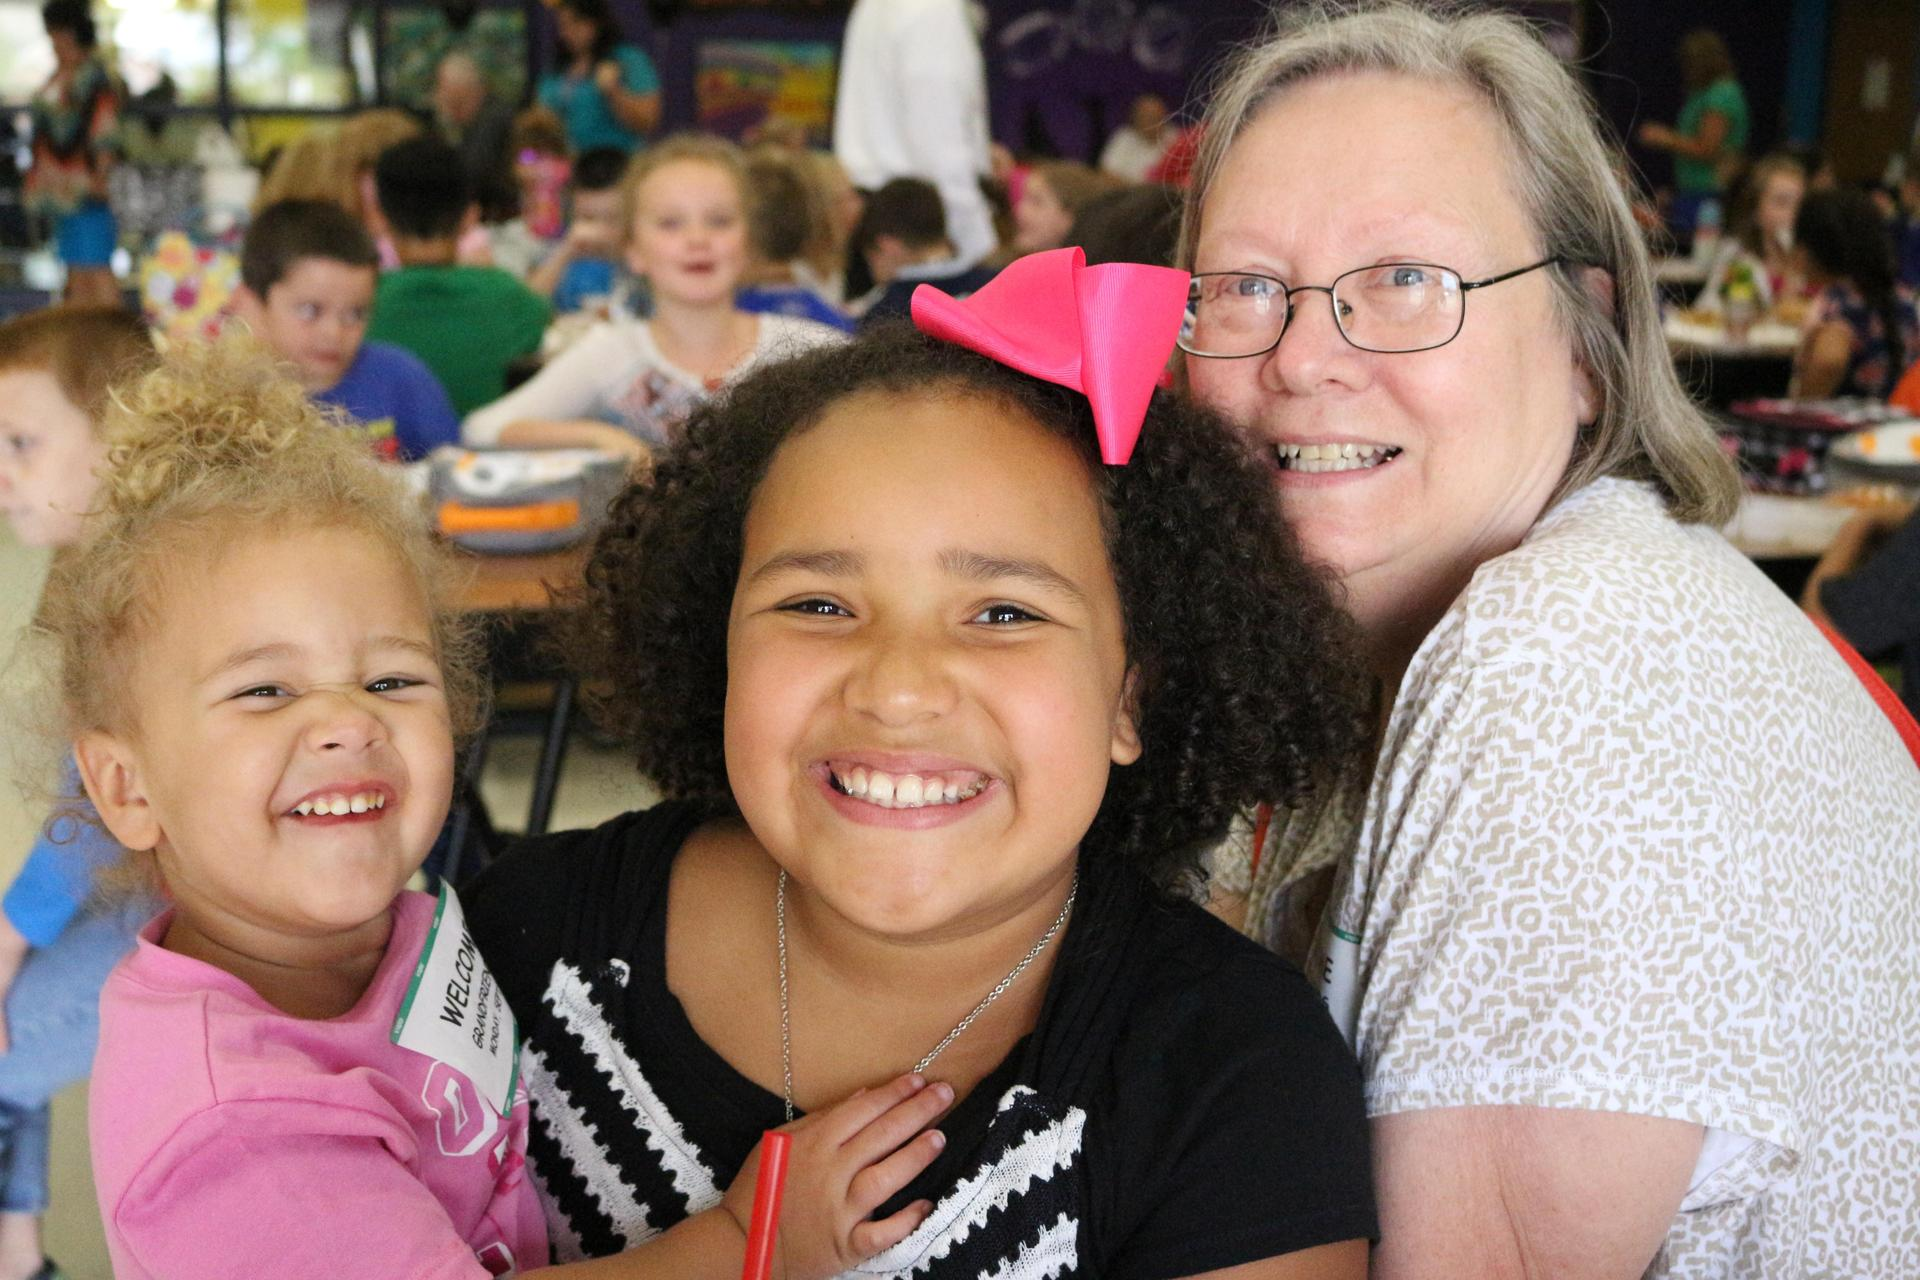 grandmother poses with 2 young granddaughters